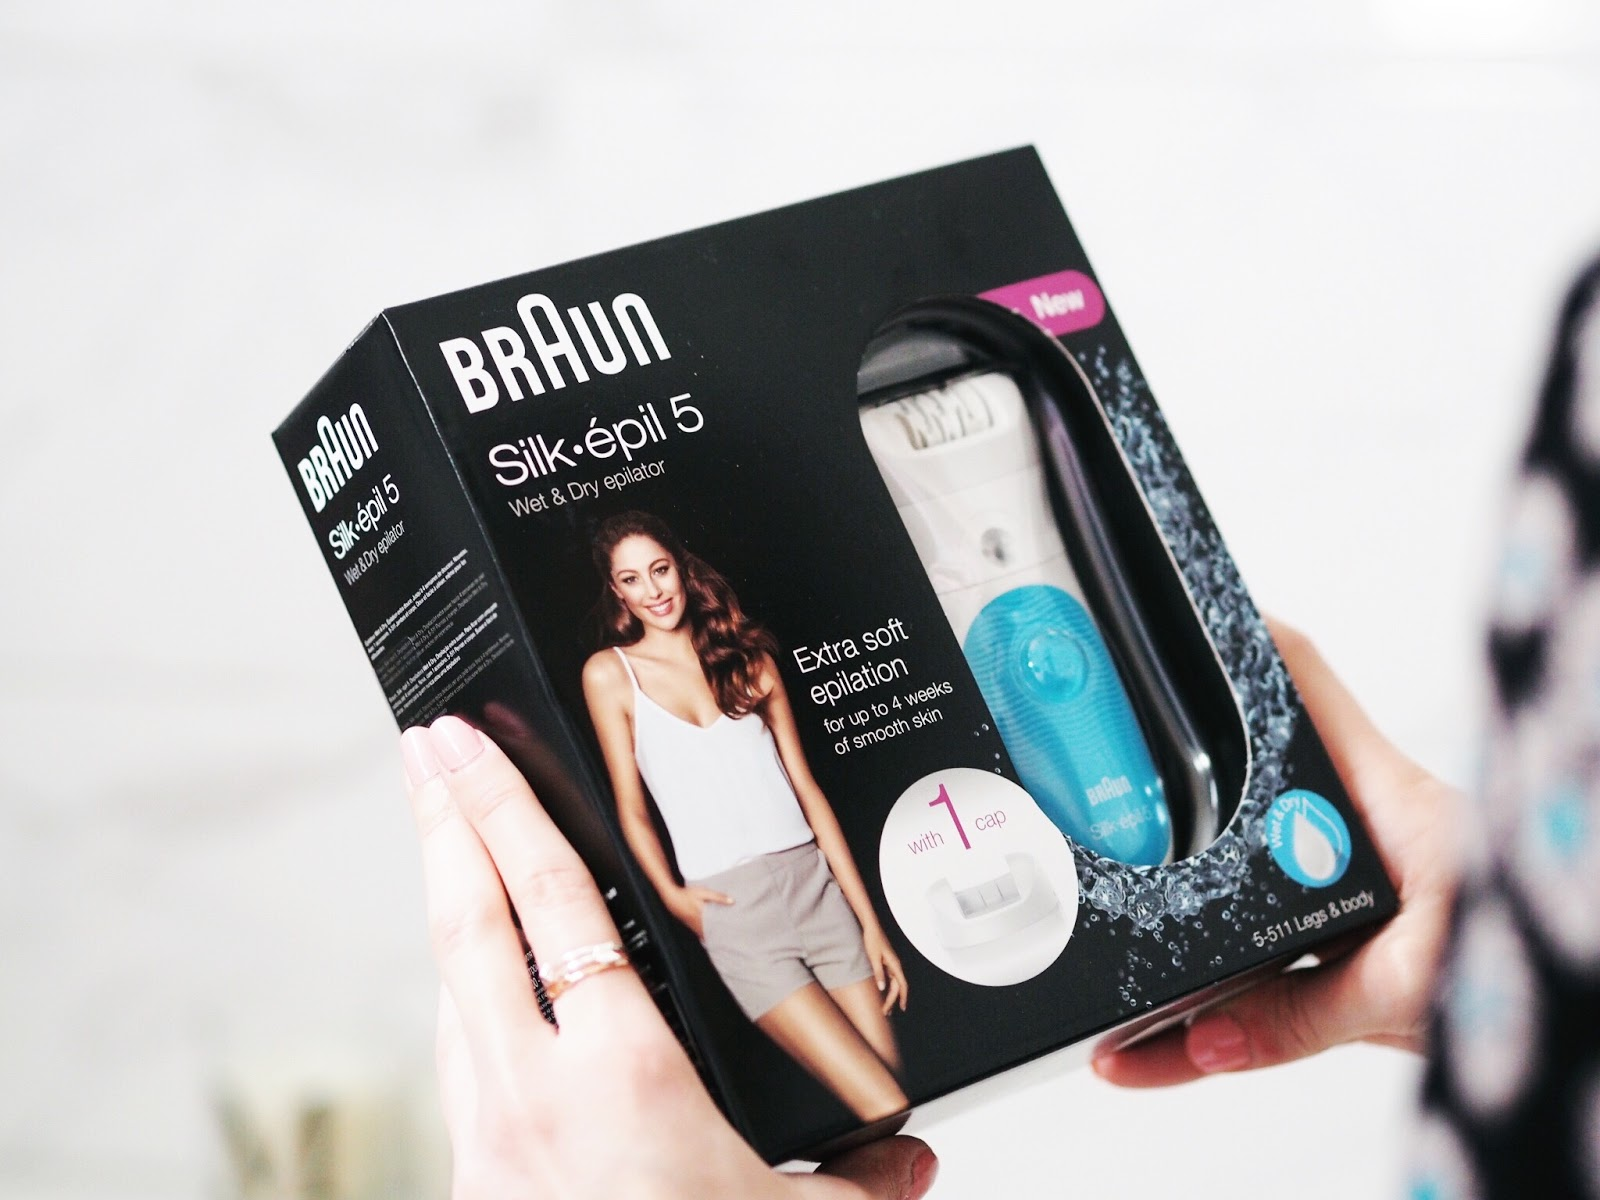 Braun Silk-Épil 5 review gifting ideas hair removal methods summer